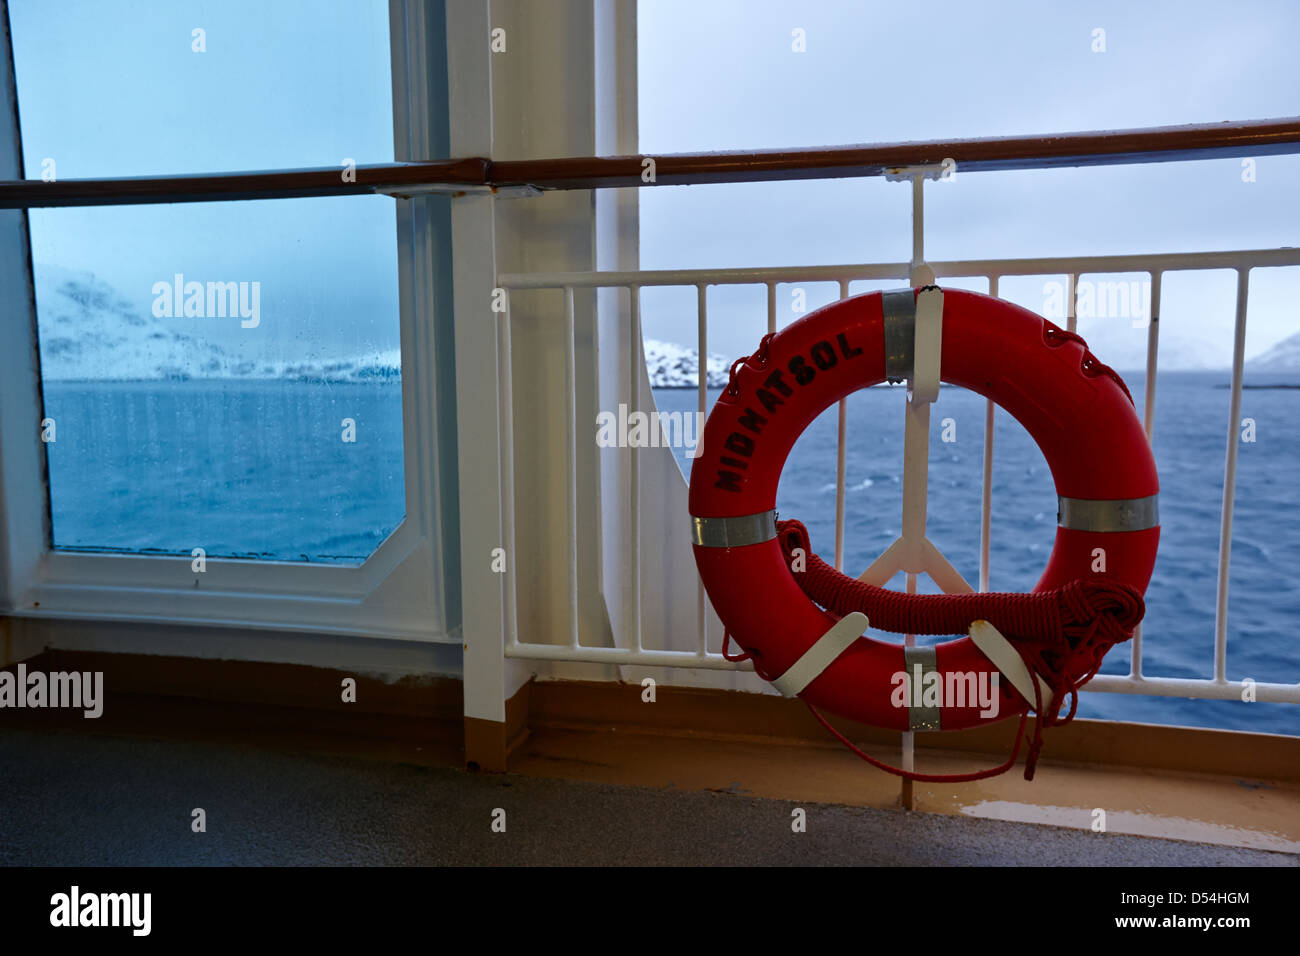 mv midnatsol lifebelt on board hurtigruten passenger ship sailing through fjords during winter norway europe - Stock Image